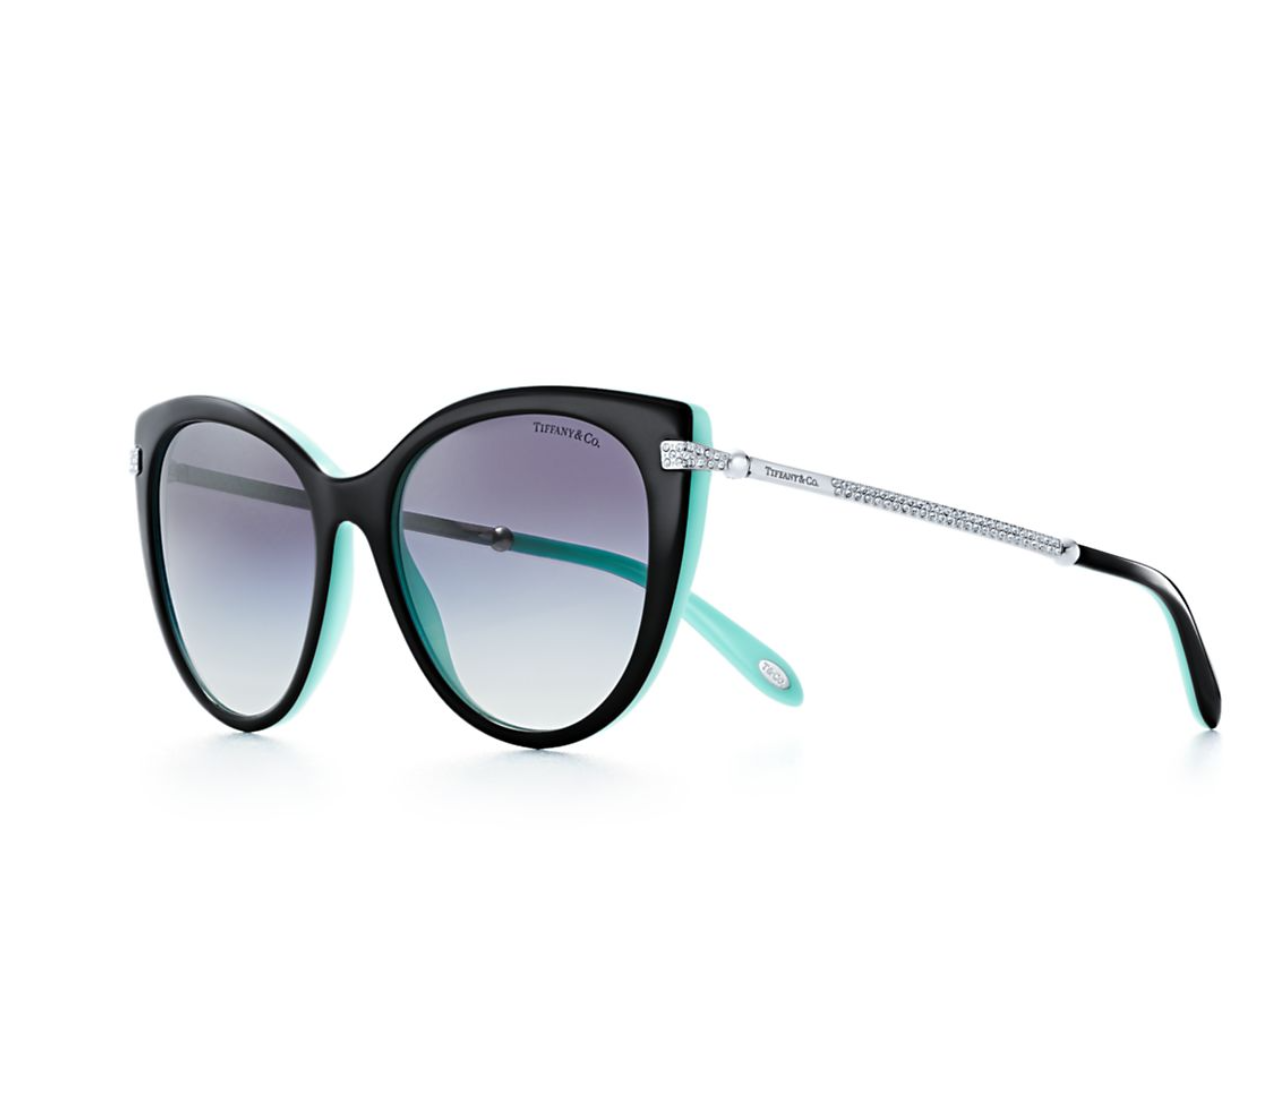 00ba091bf9 TIFFANY HARDWEAR Cat Eye Sunglasses - D Amore Jewelers